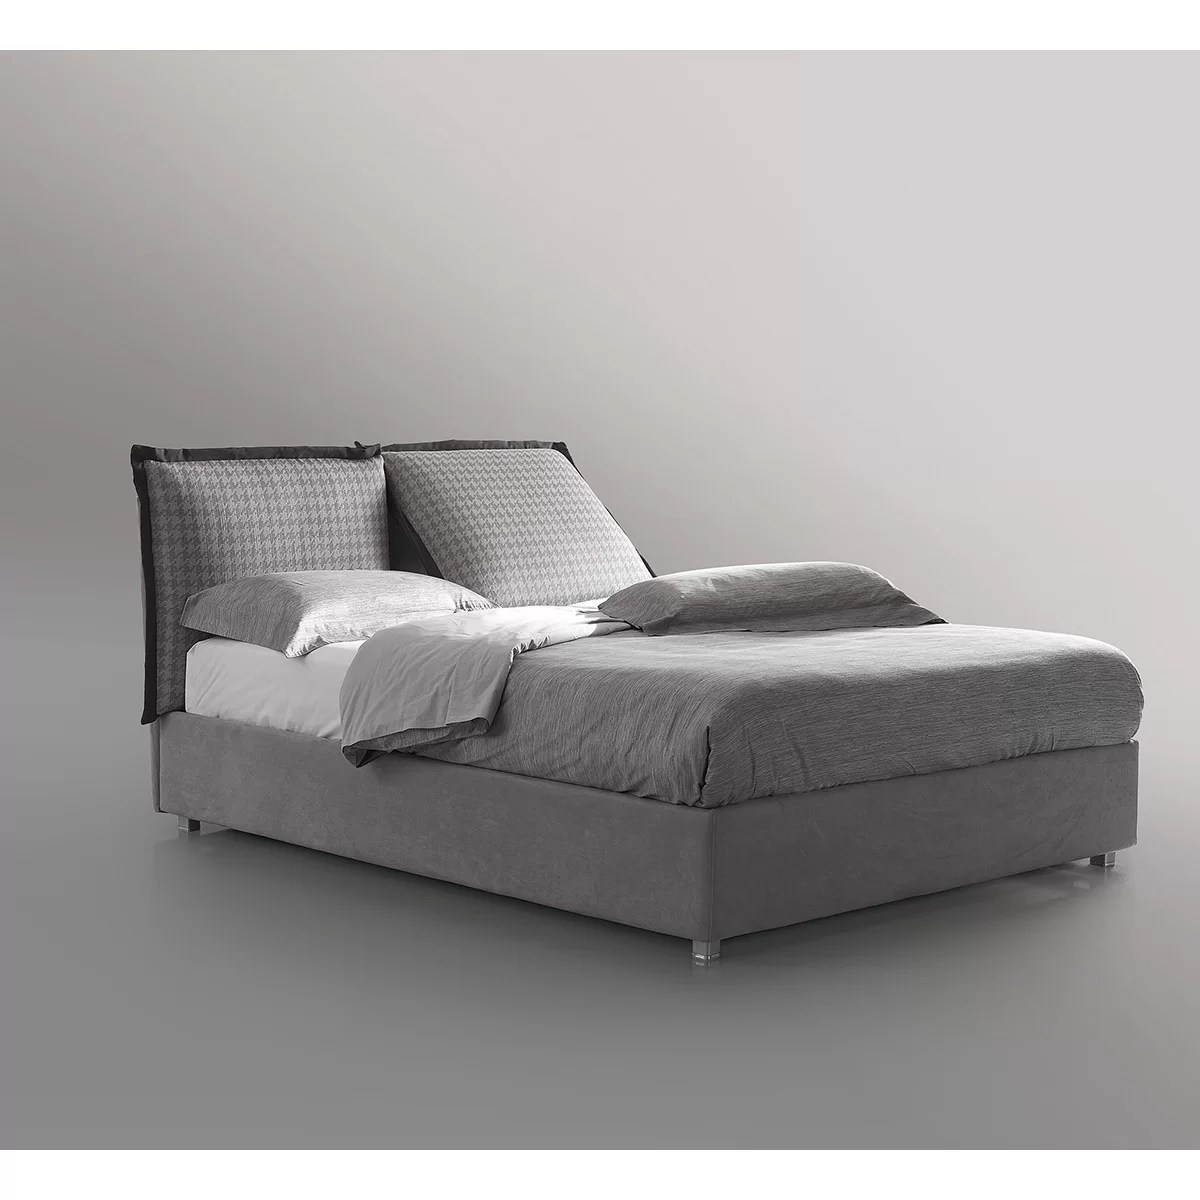 Respace King Upholstered Storage Platform Bed